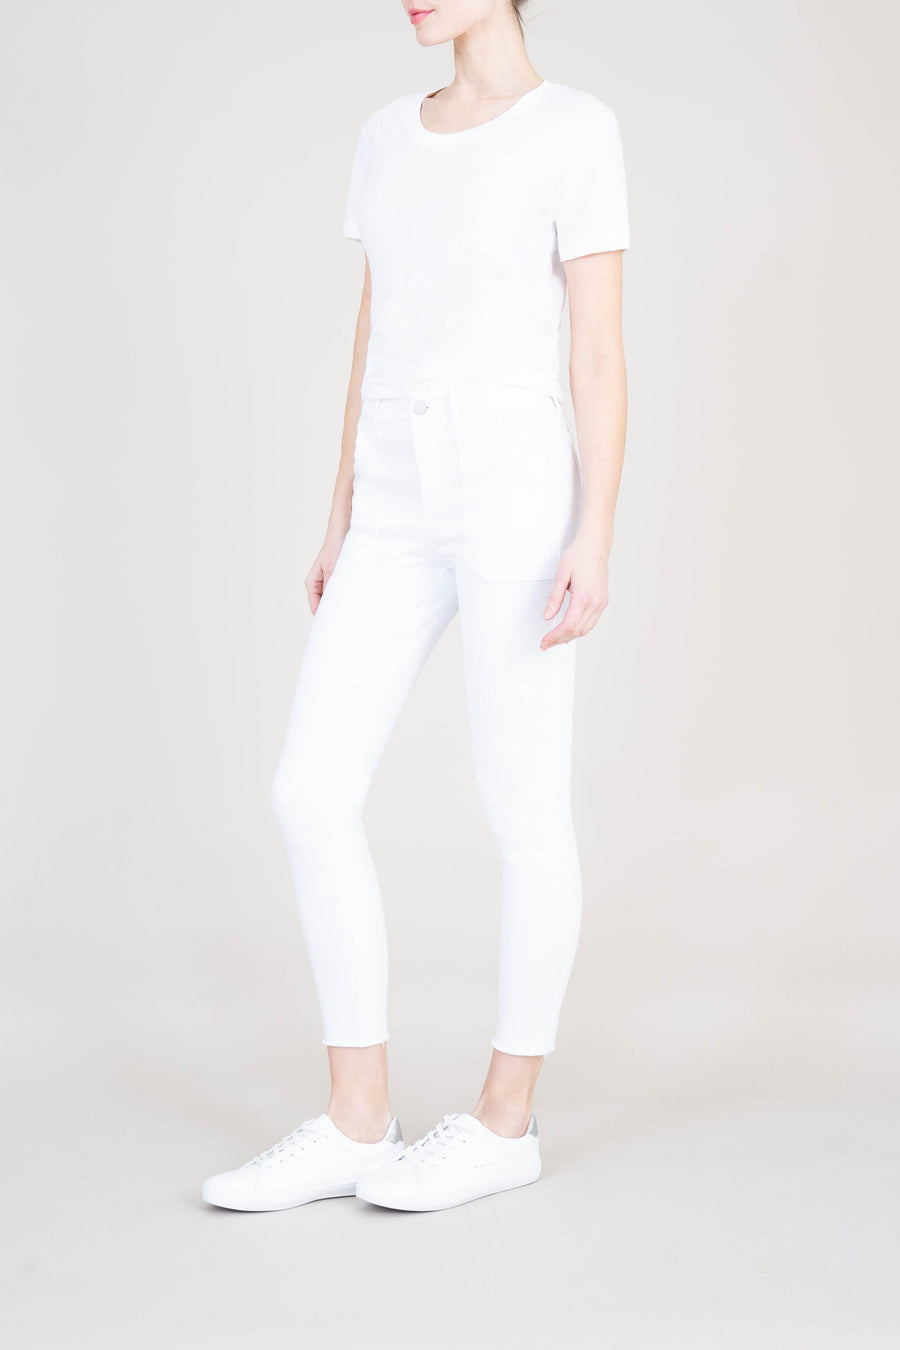 Karli Patch Pocket Skinny - level99jeans